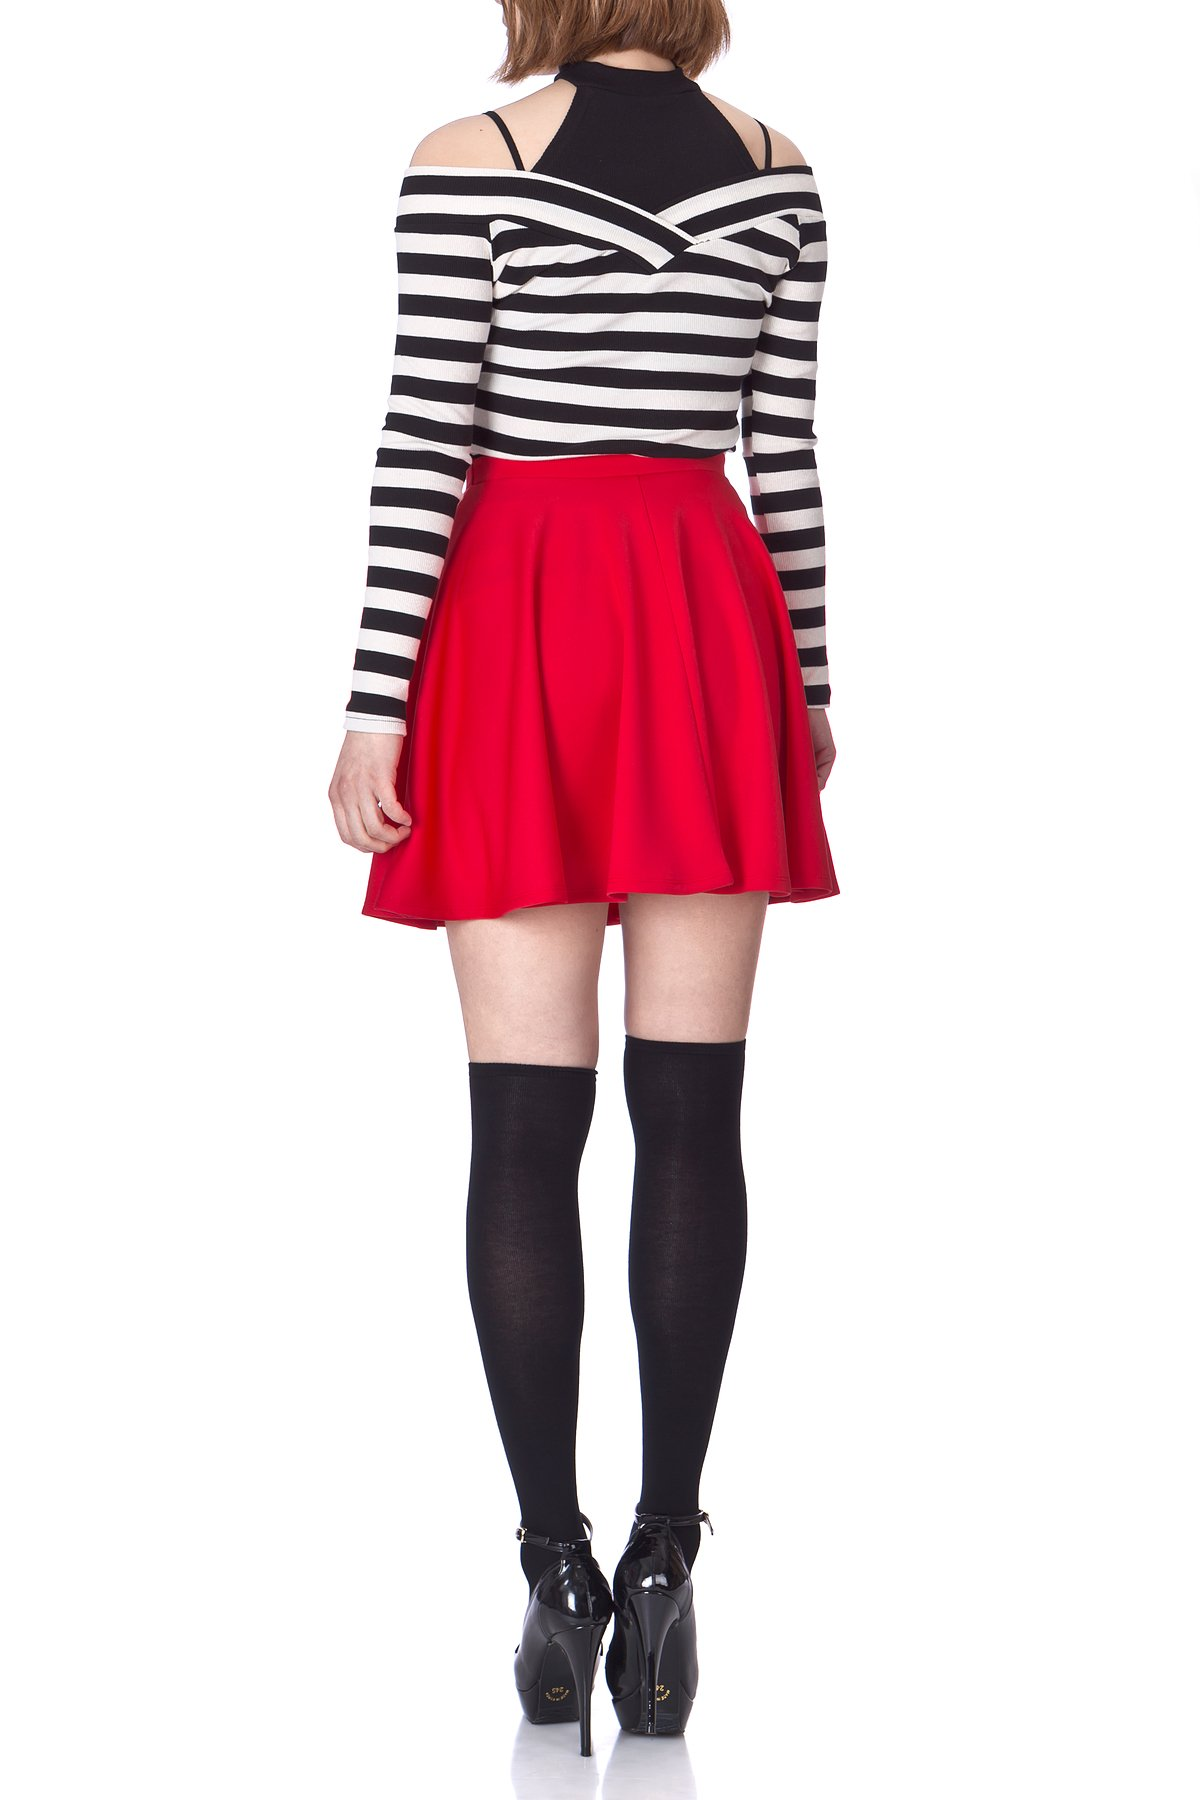 Flouncy High Waist A line Full Flared Circle Swing Dance Party Casual Skater Short Mini Skirt Red 05